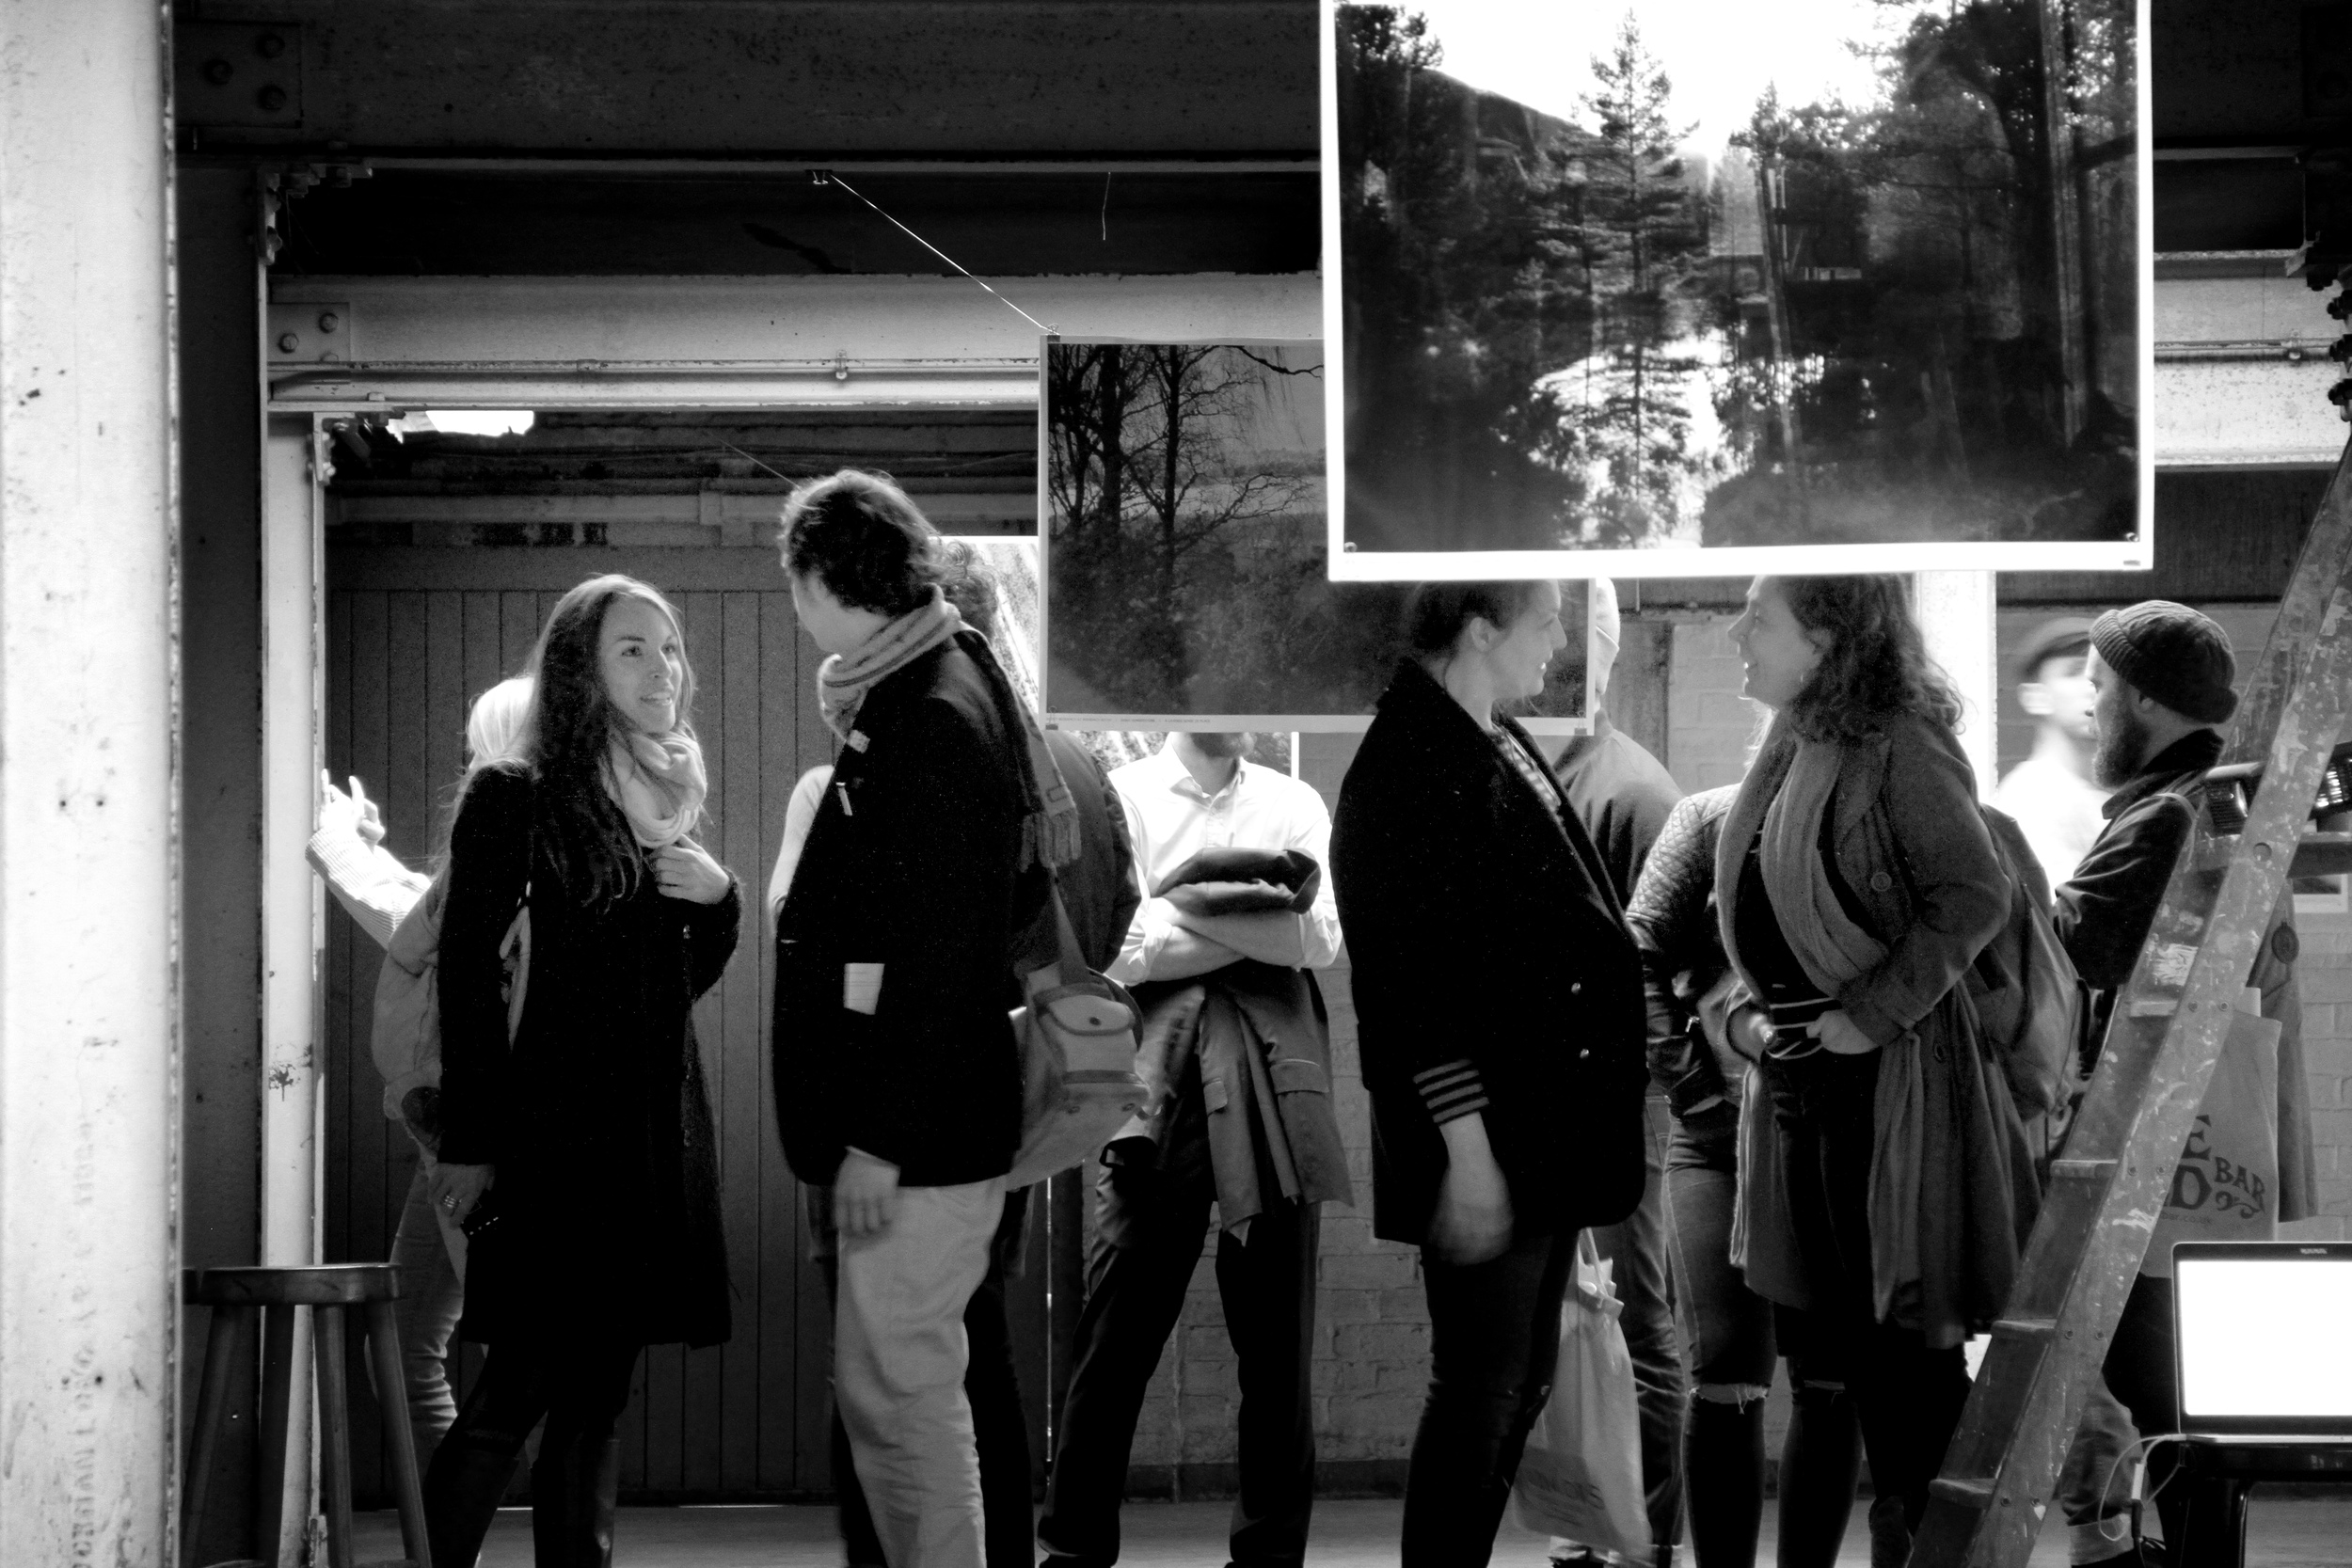 HERE+NOW_Jenny Humberstone_Exhibition at Biscuit Factory_May 2015_08 BW.jpg